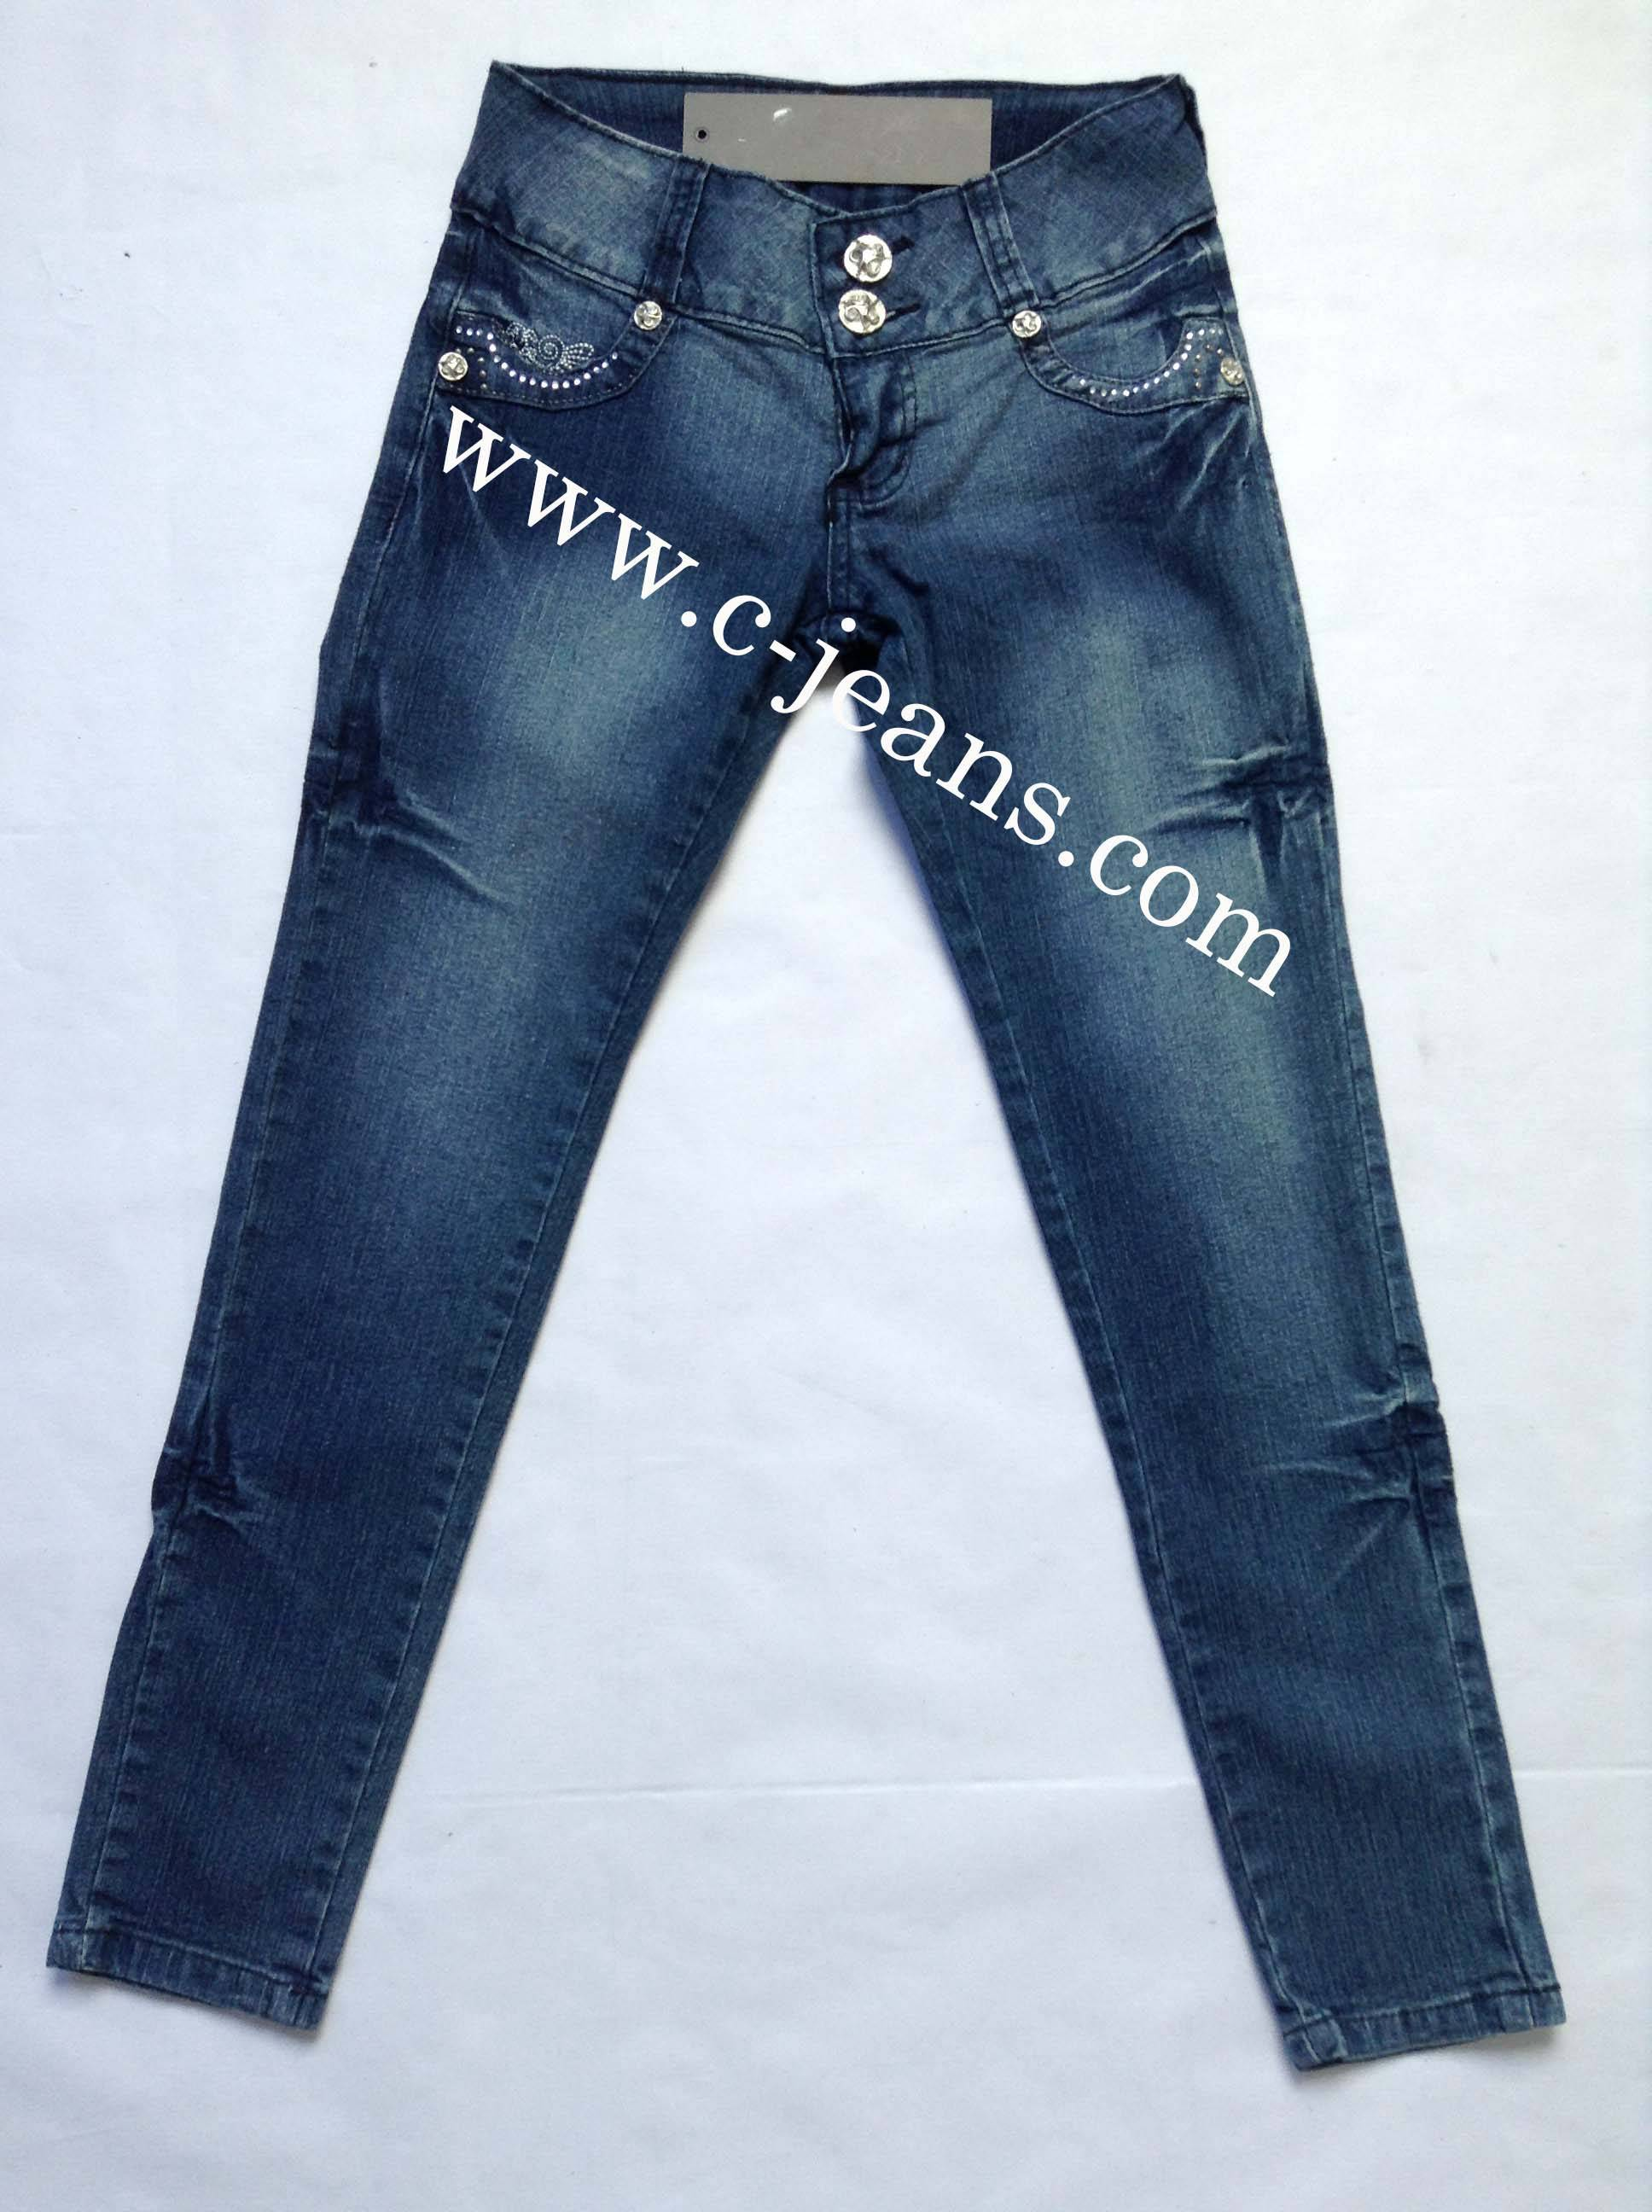 Lady's Jeans with Whiskers and Sandblast. 2014 Latest Design Skinny Lady Jeans, Fashion Branded Woma